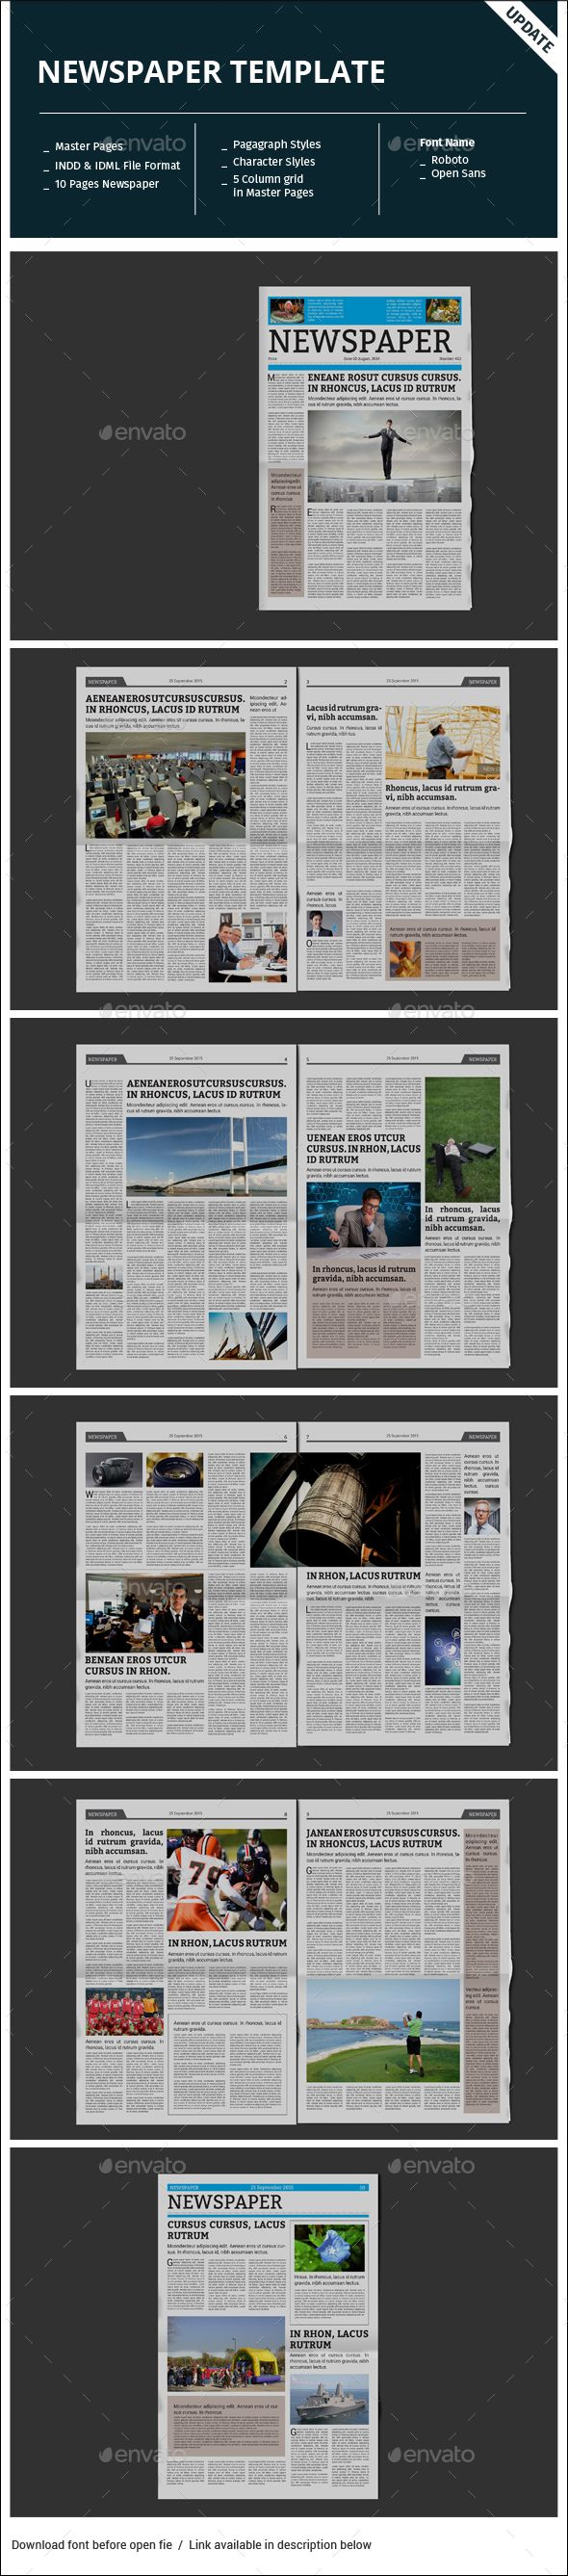 102 best Newspaper / Newsletters / Print Templates images on ...